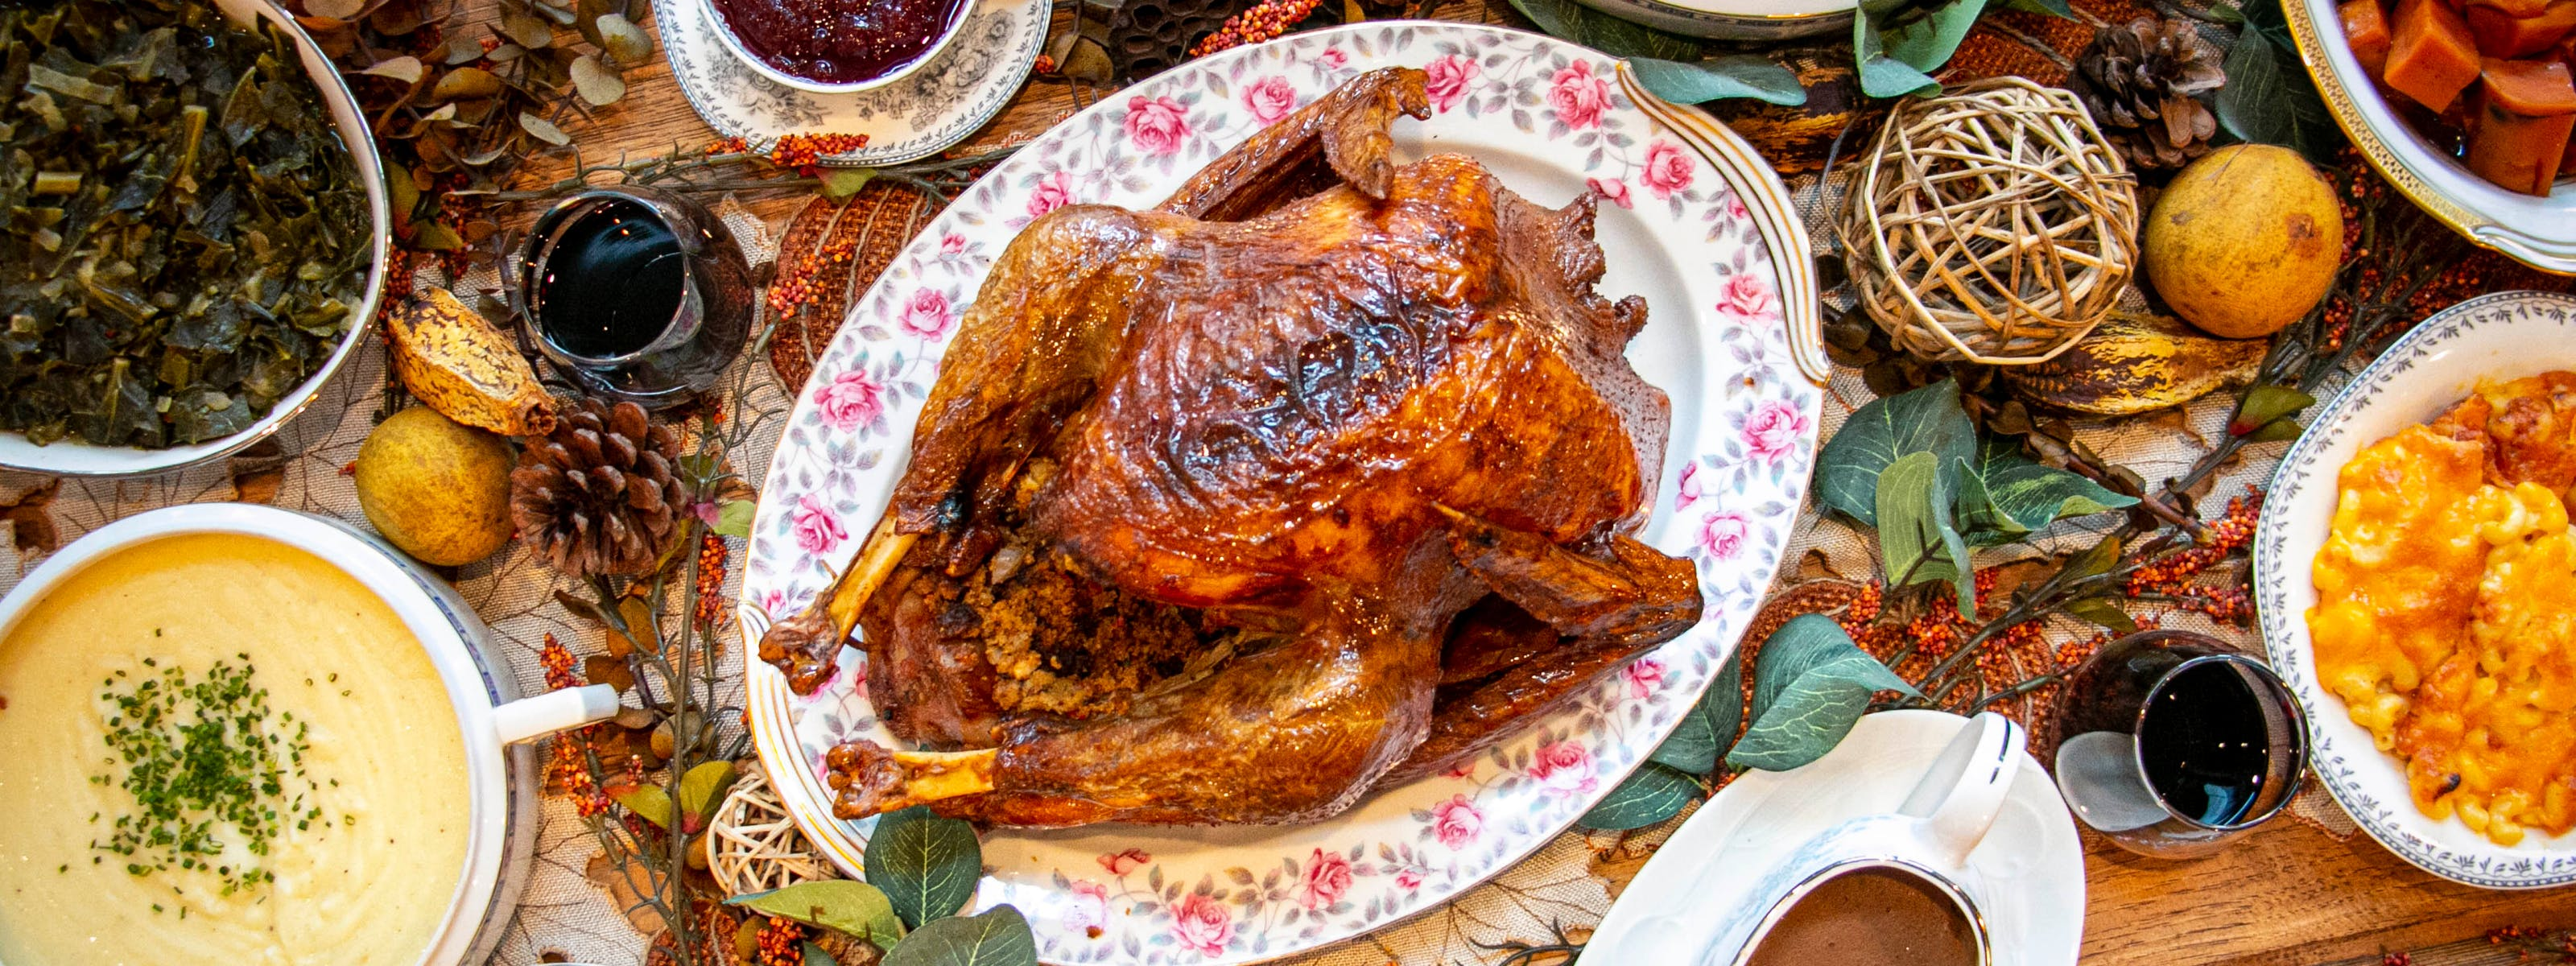 Chicago Restaurants Offering Thanksgiving Takeout Specials - Chicago - The Infatuation